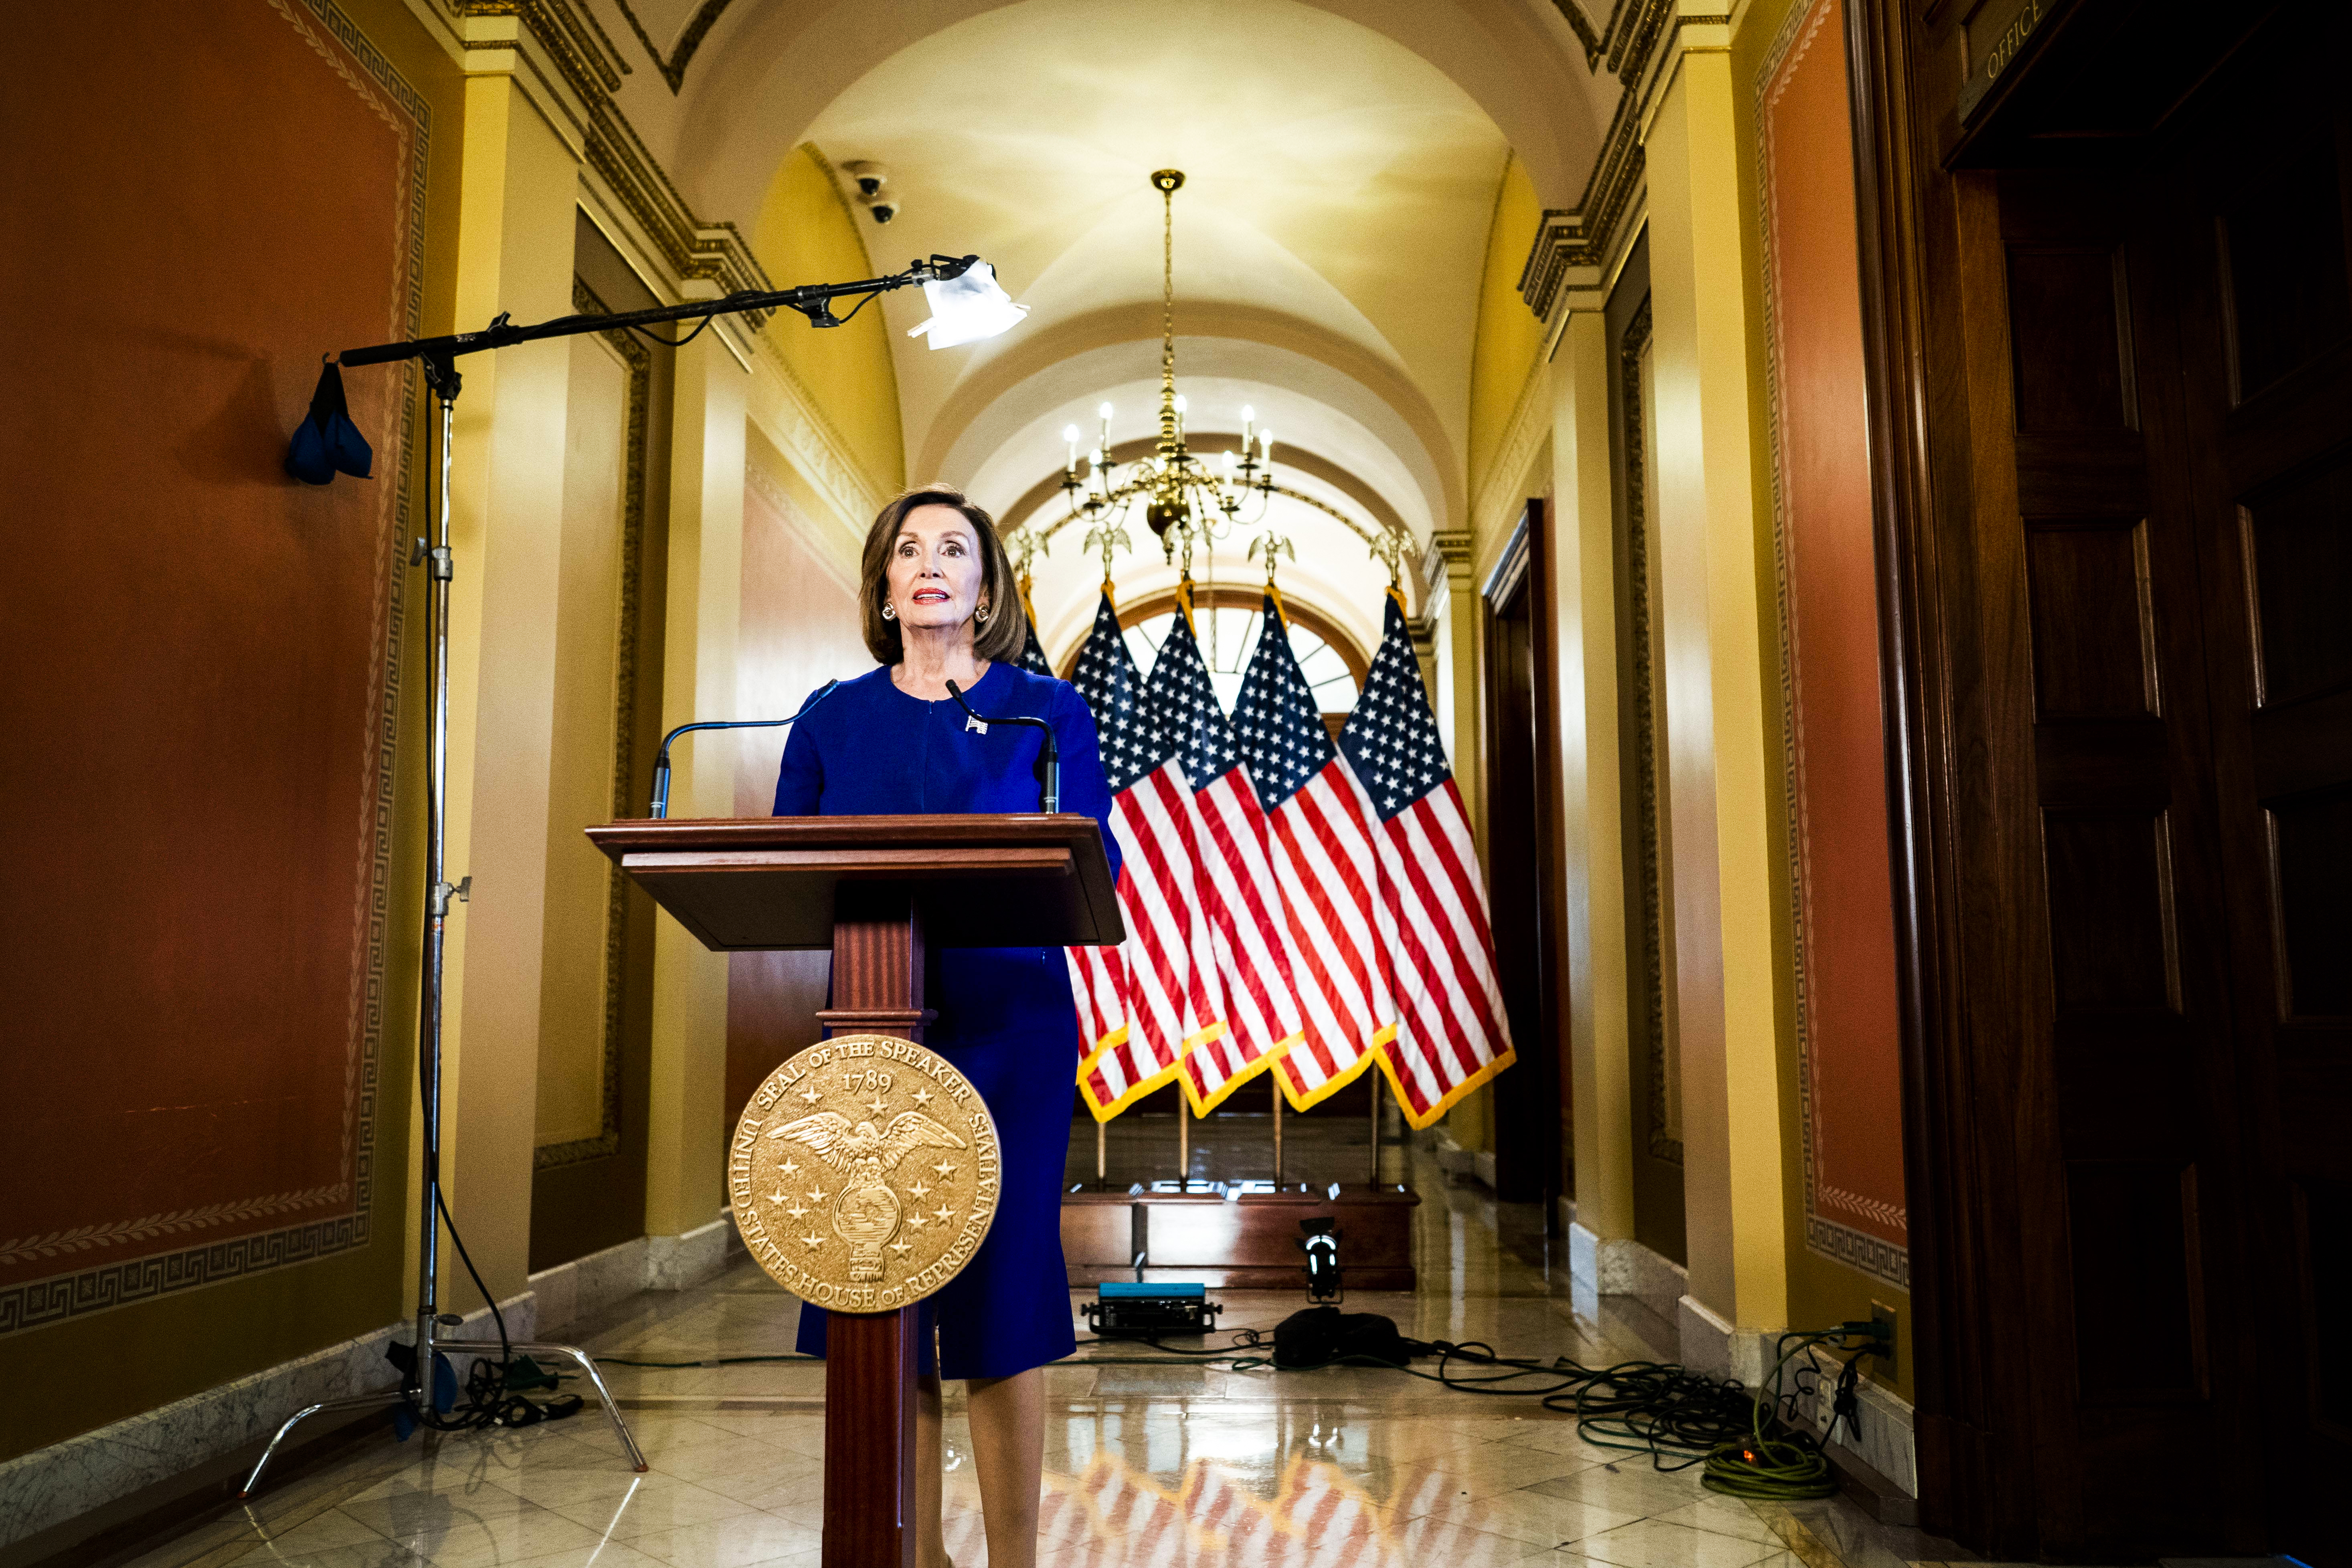 Speaker of the House Representative Nancy Pelosi speaks to the press at a podium set up in a hallway outside her office.